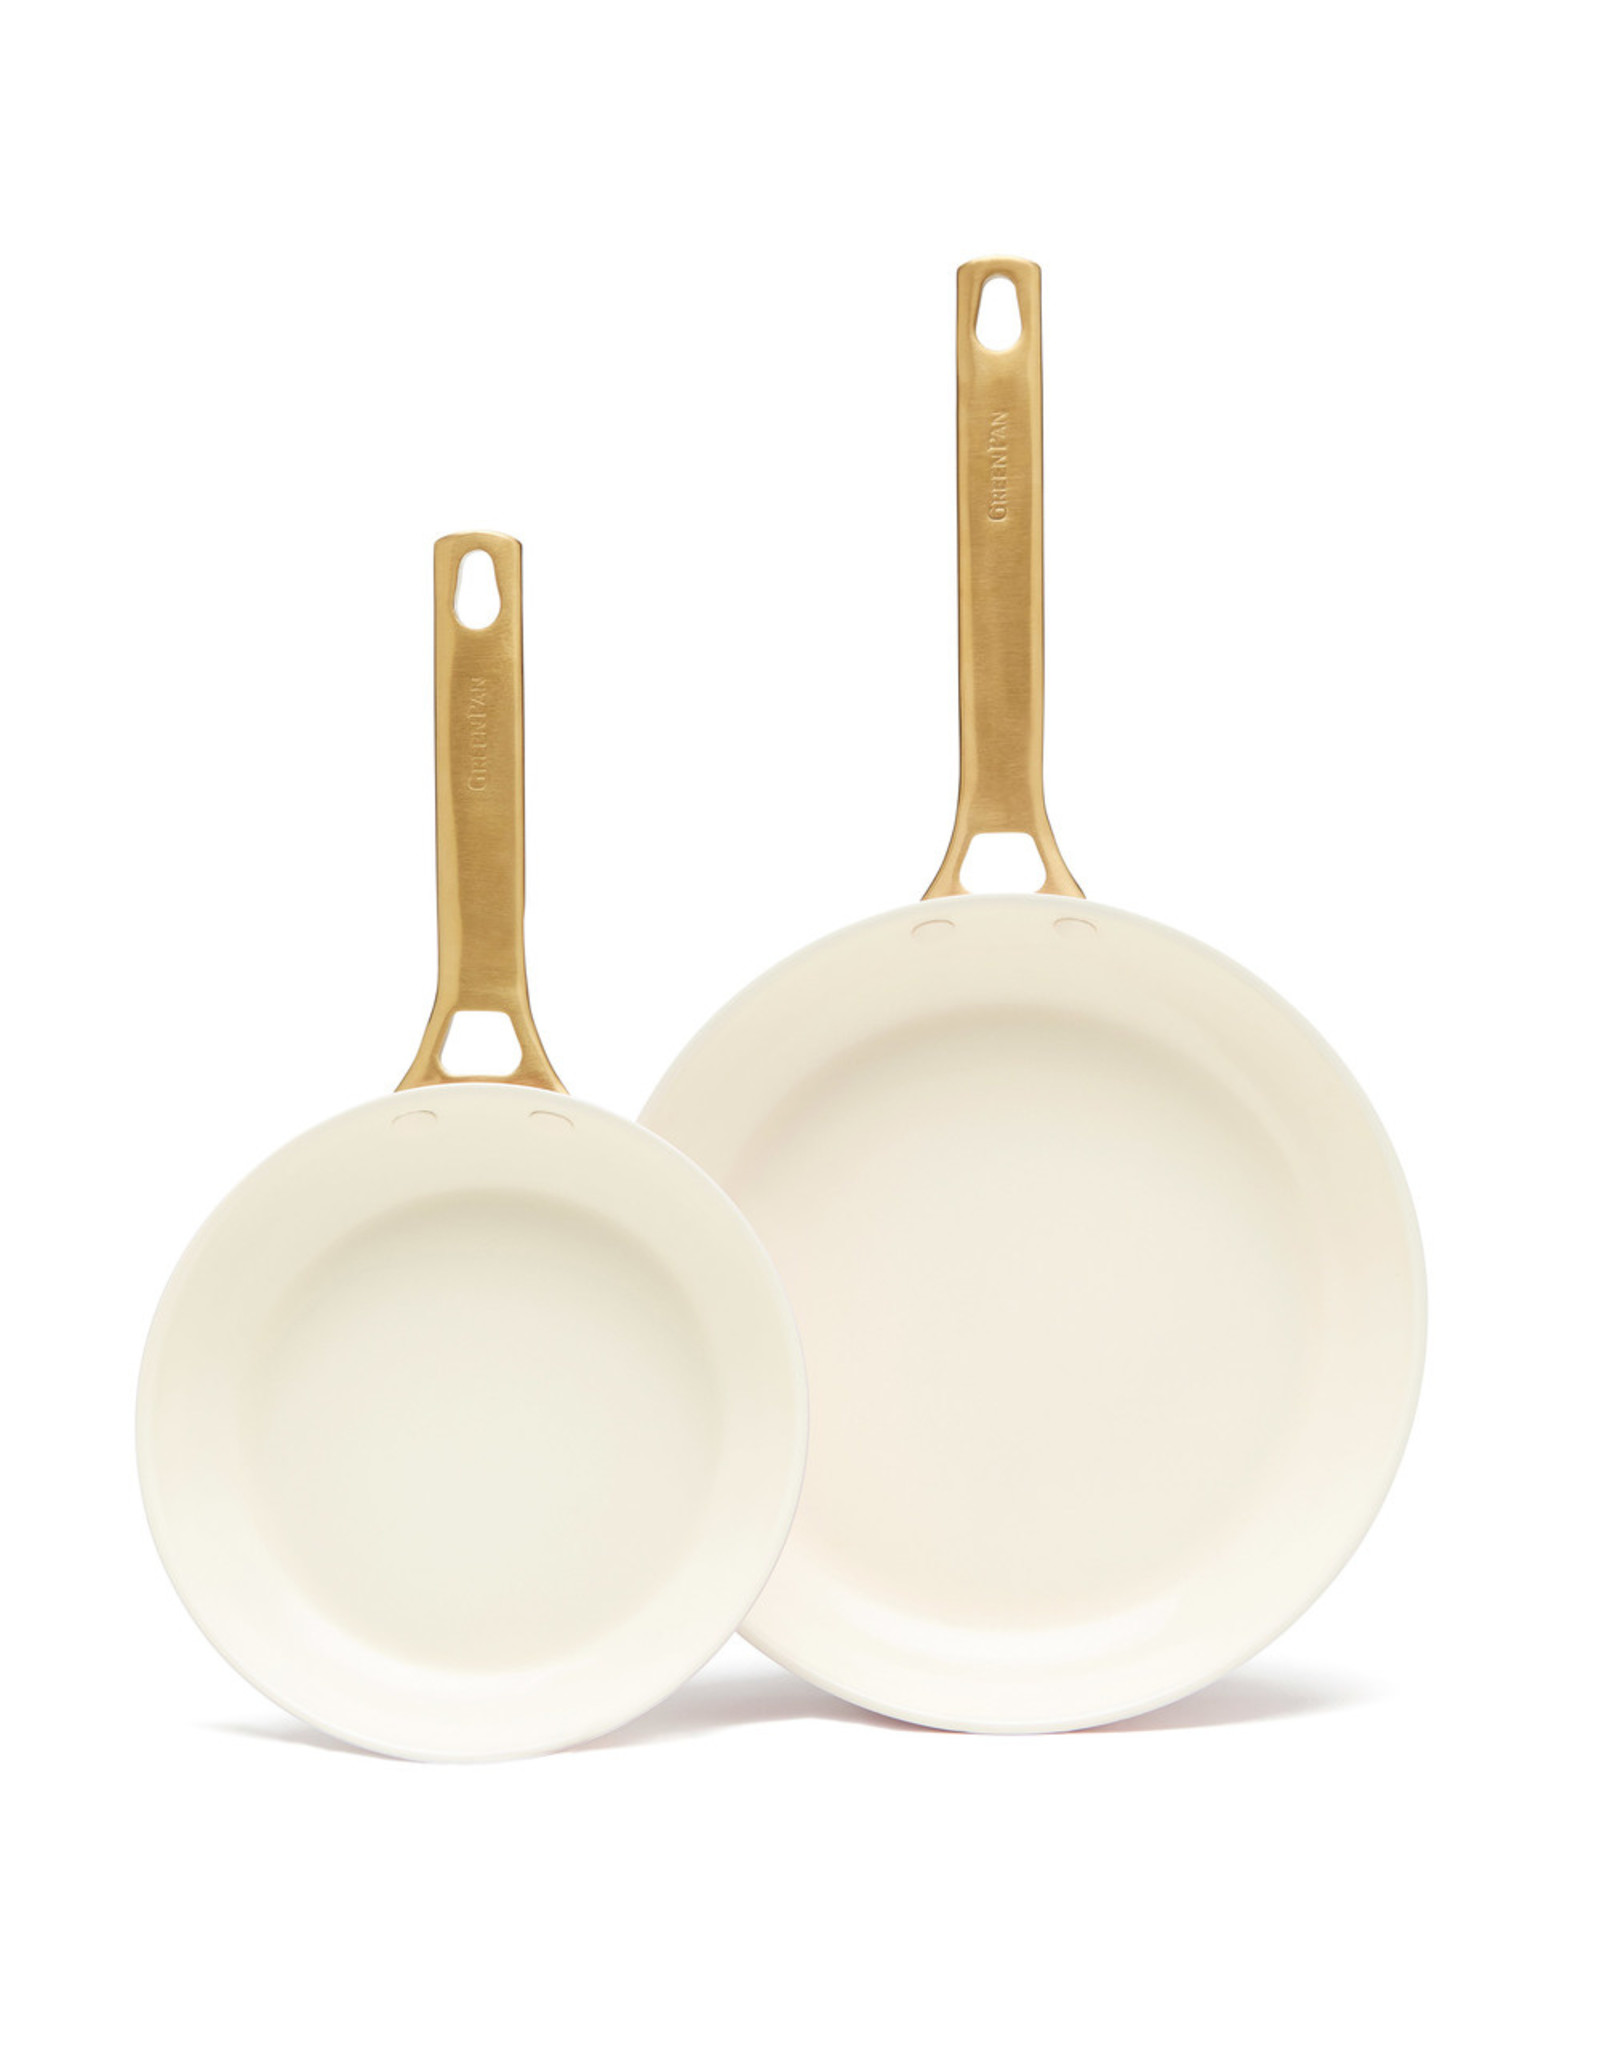 "goop x Greenpan goop x Greenpan goop Exclusive 8"" & 10"" Blush Frypan Set (Color: Blush)"